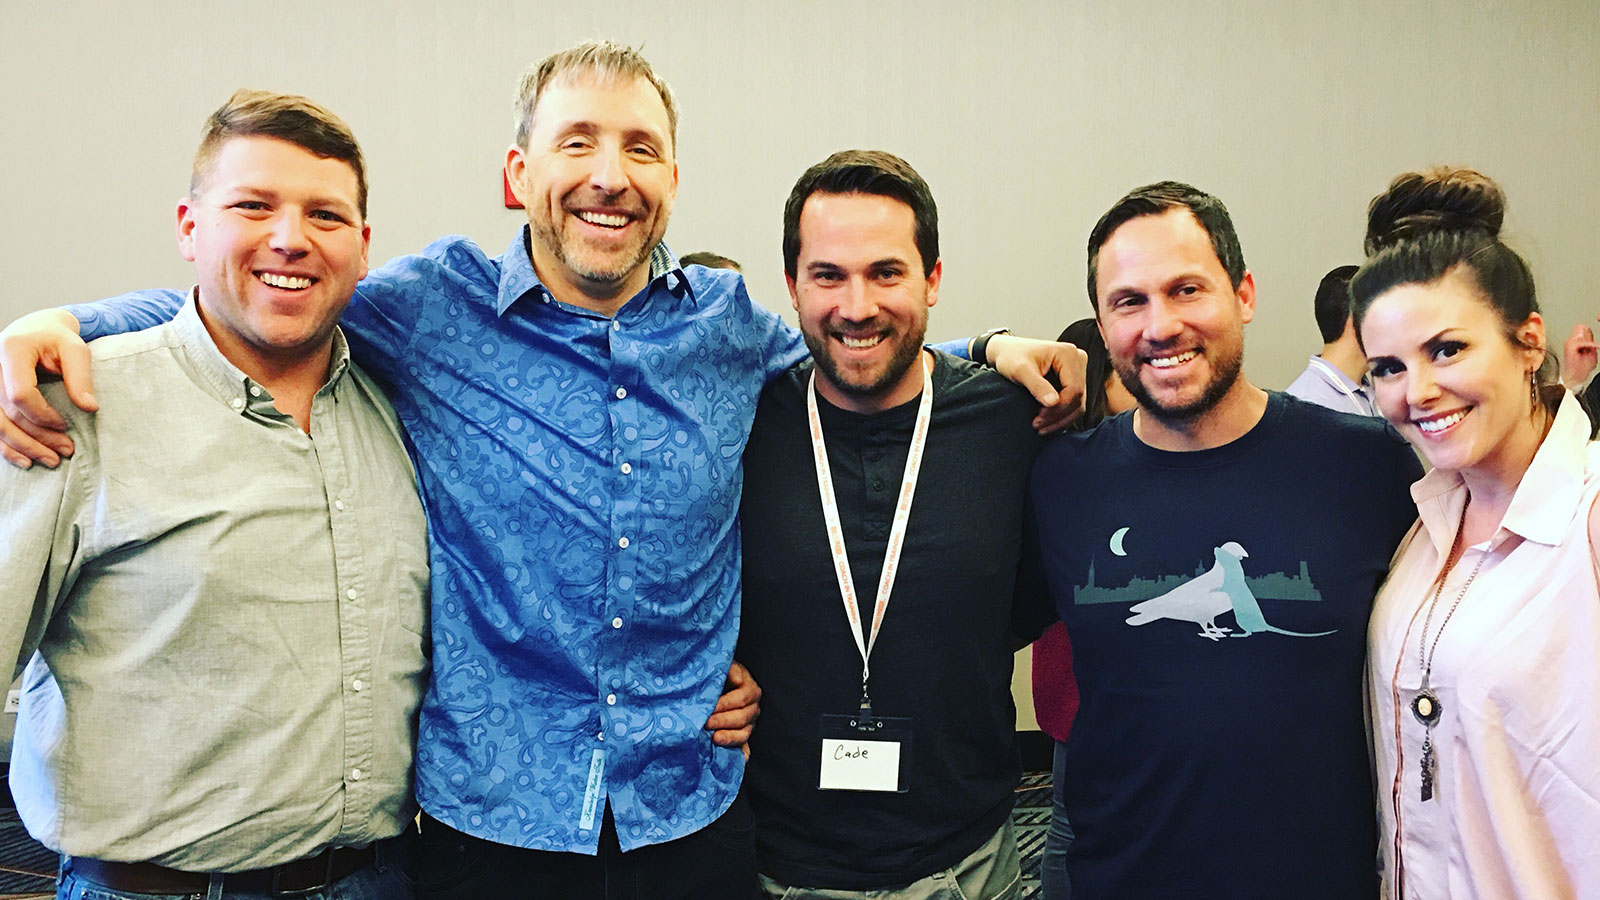 From left: Ryan Killarney, Dave Asprey, Cade Archibald, Regan Archibald & Jessica Davalos